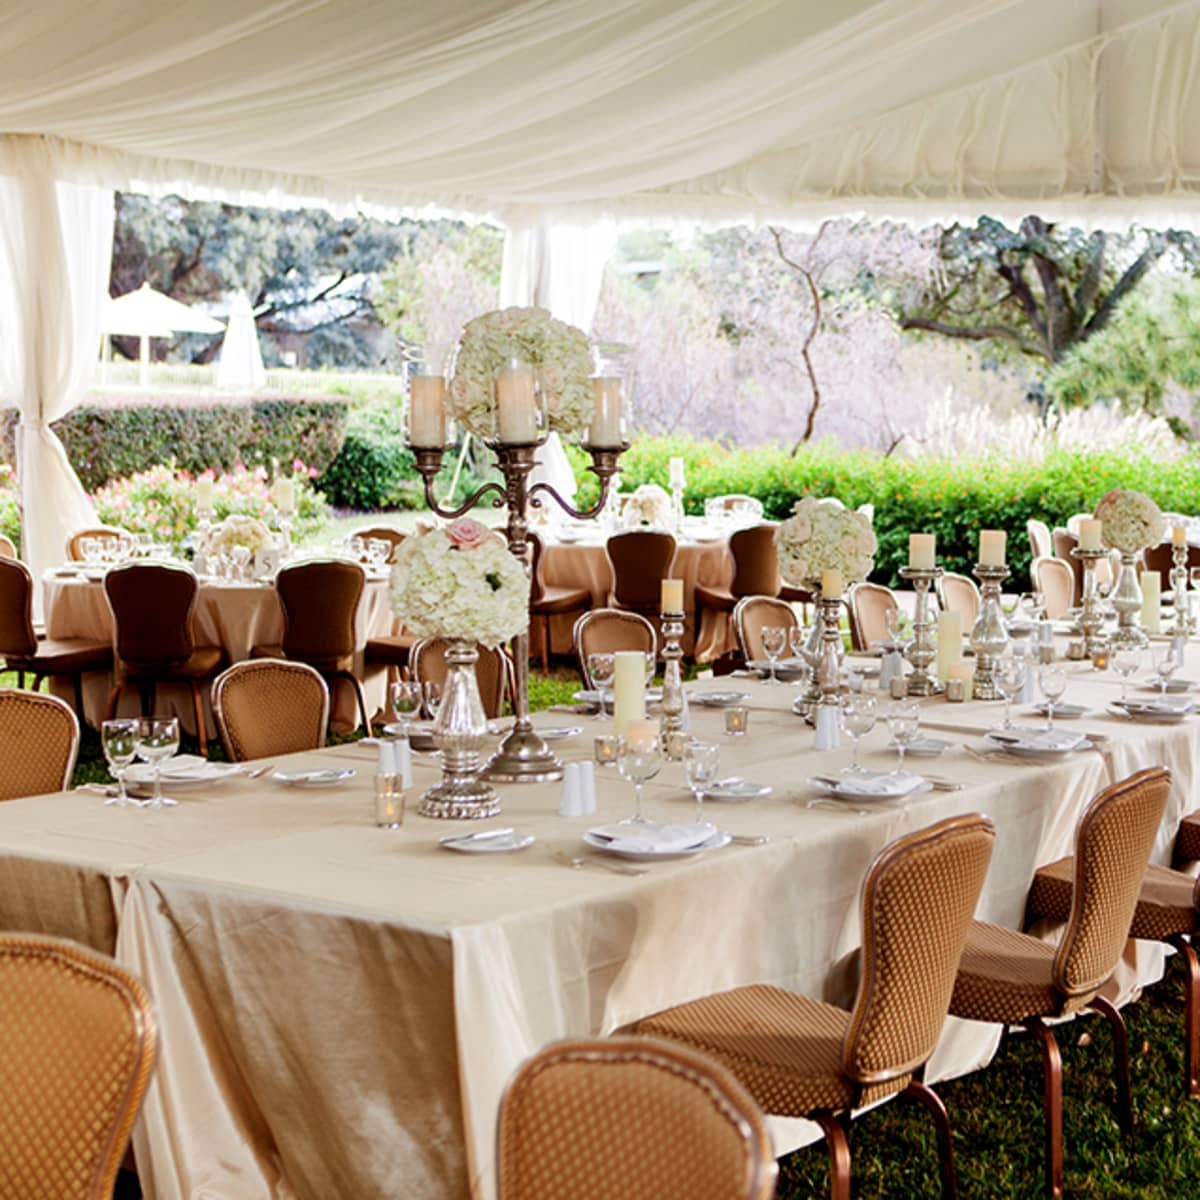 Elegance Reigns Inside The Dinner Tent With Tables Set For Family Style Dining